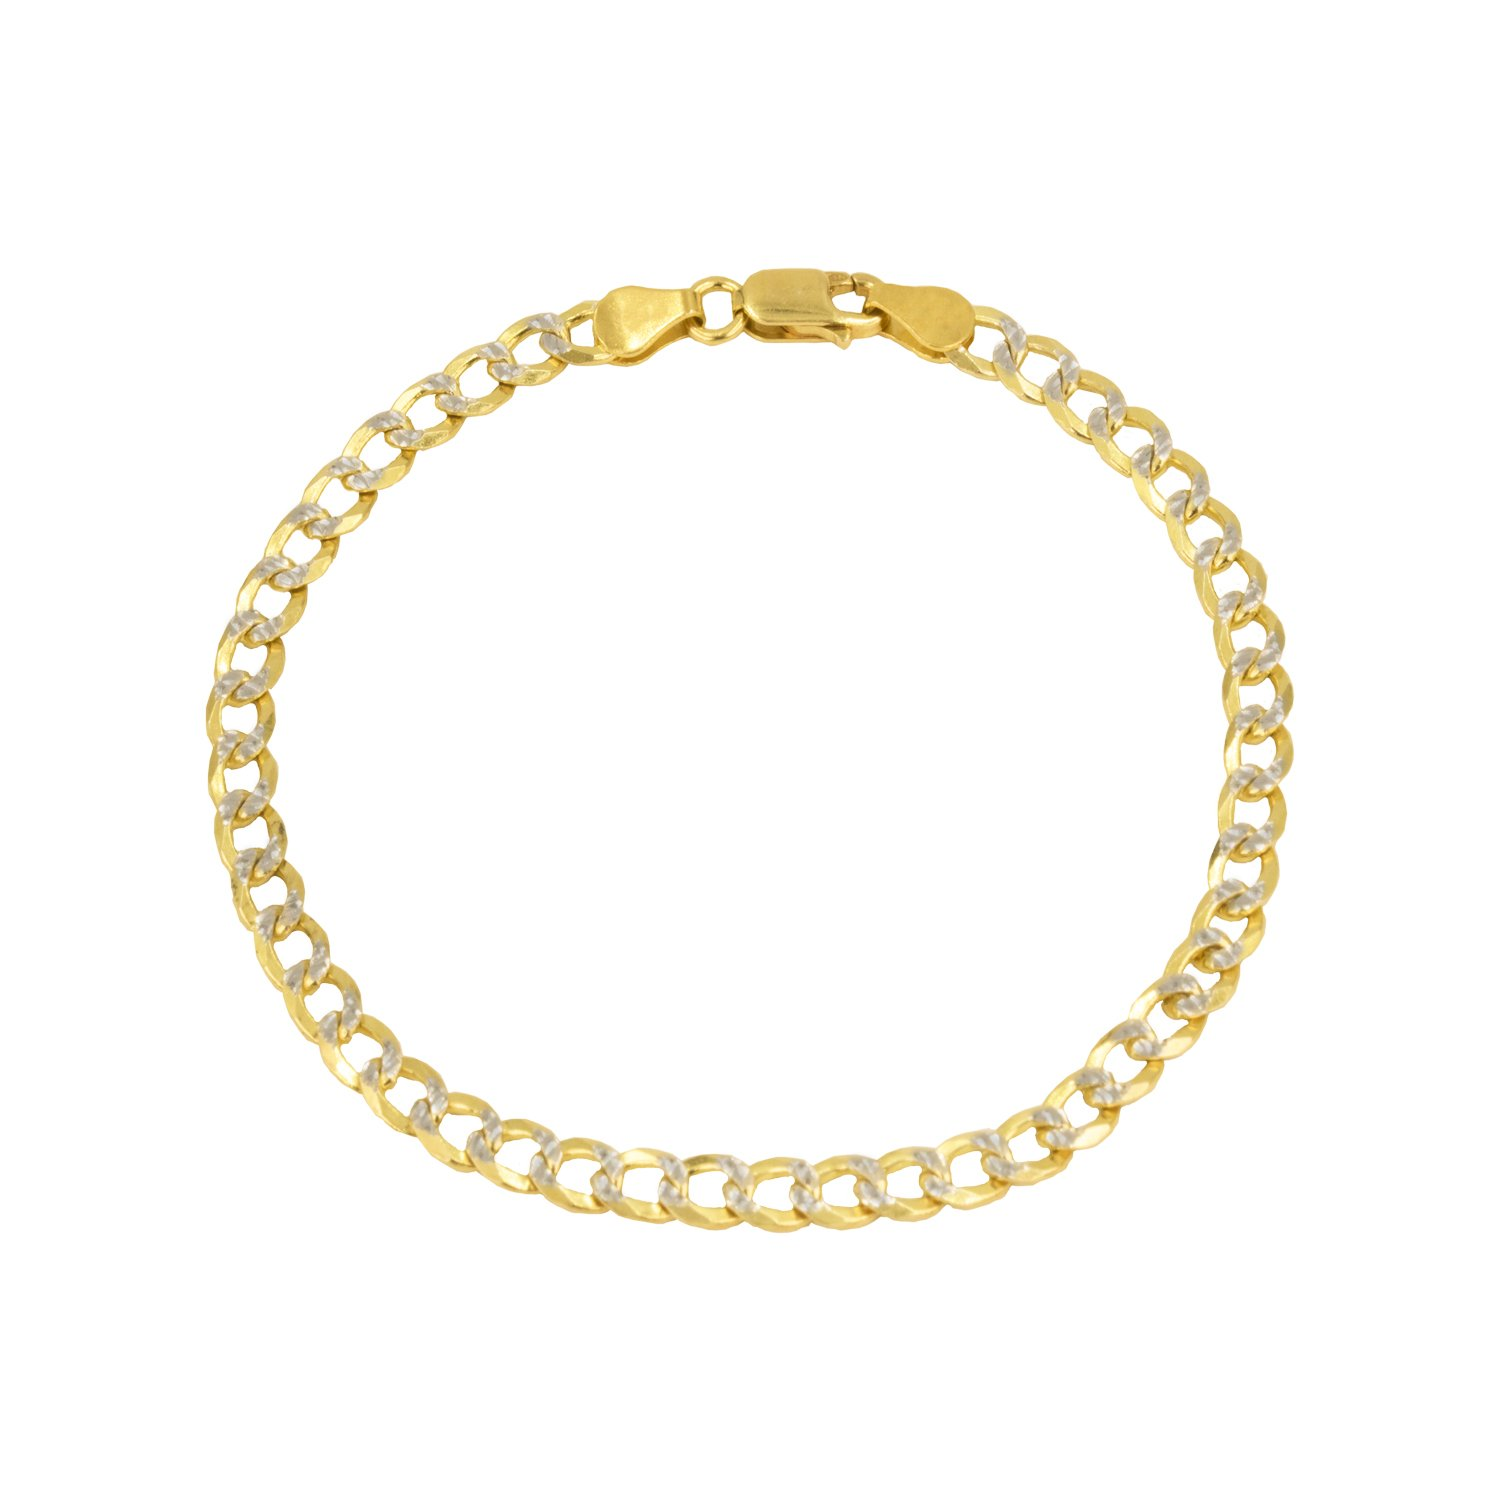 14K Solid Yellow Gold with White Pave Diamond Cuts 4.2MM Cuban Chain Bracelets-8 Inch